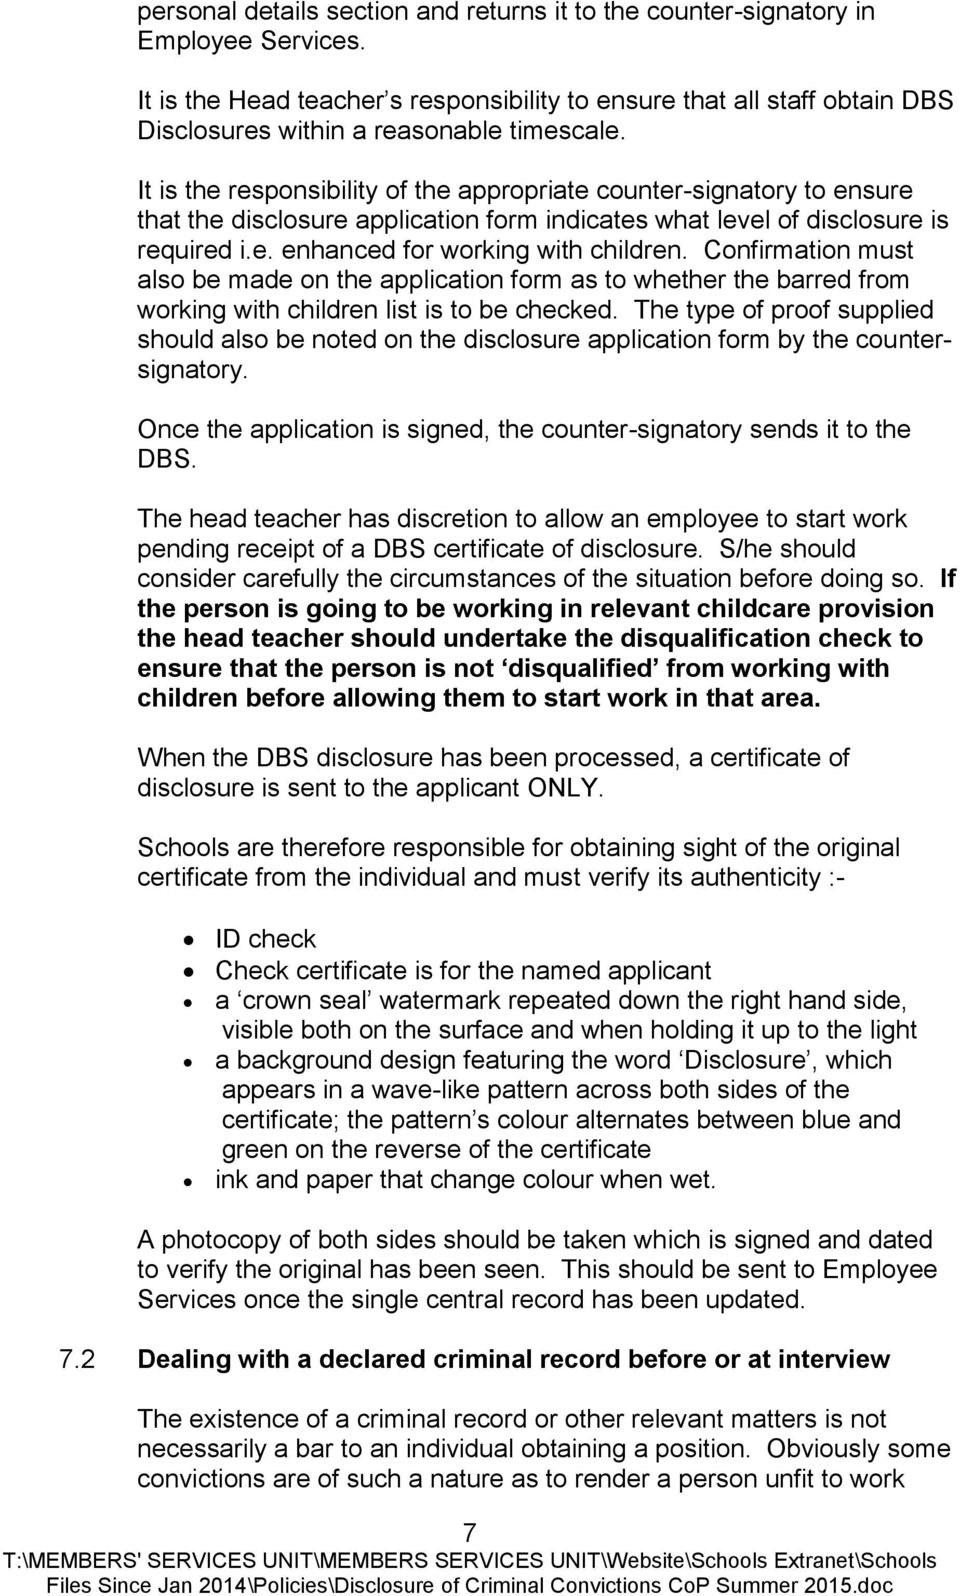 It is the responsibility of the appropriate counter-signatory to ensure that the disclosure application form indicates what level of disclosure is required i.e. enhanced for working with children.